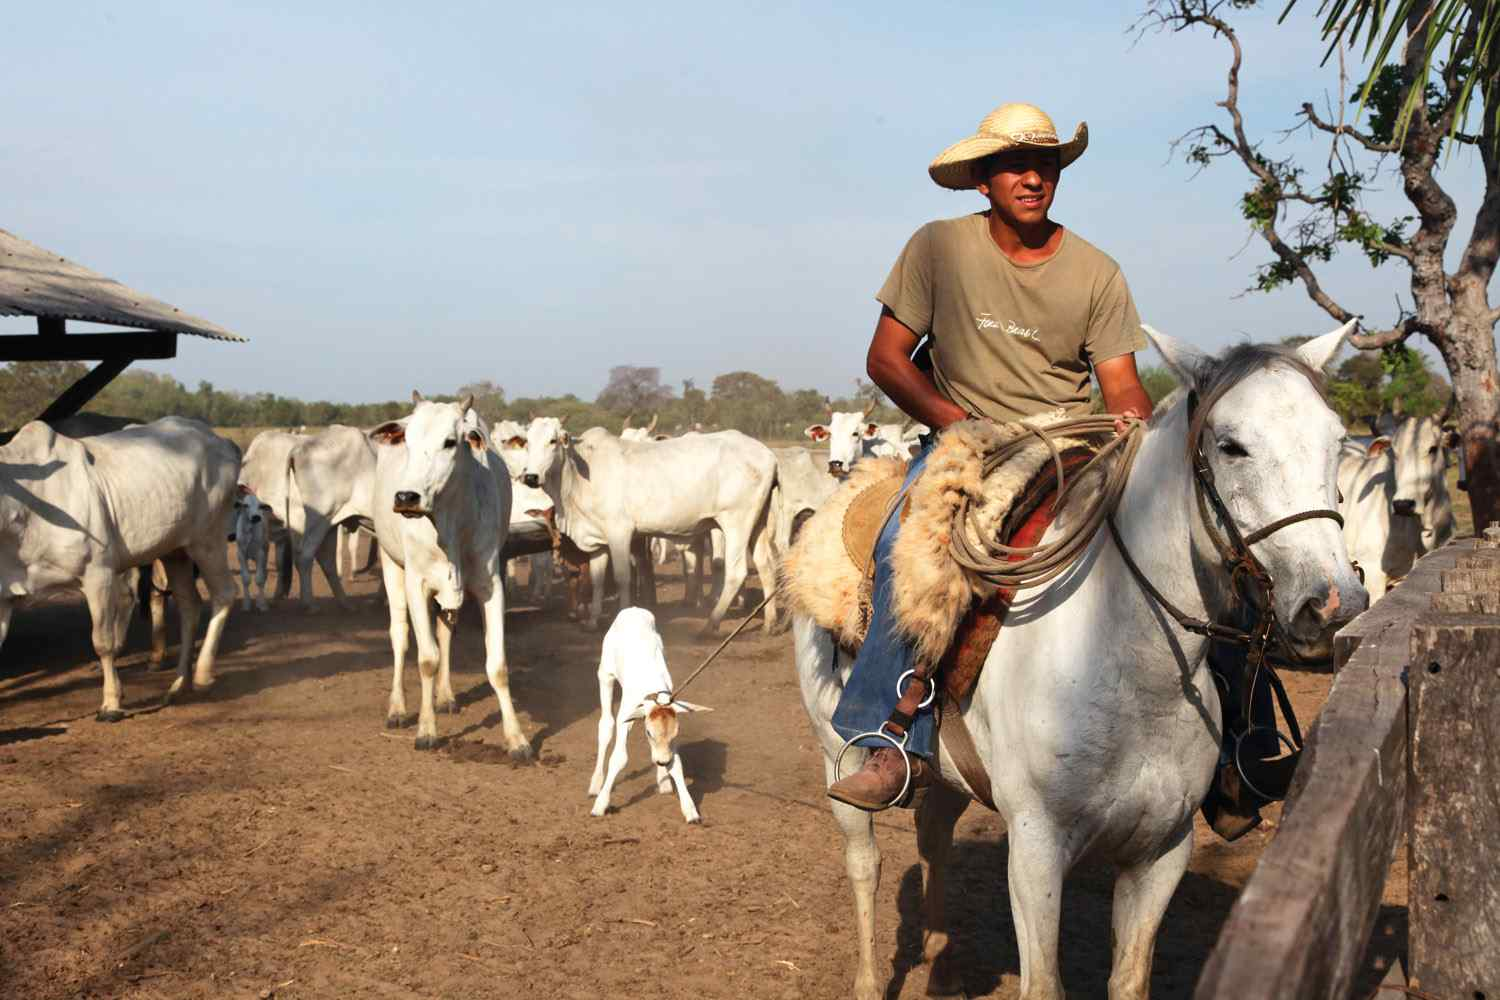 Horse riding in the Pantanal Brazil